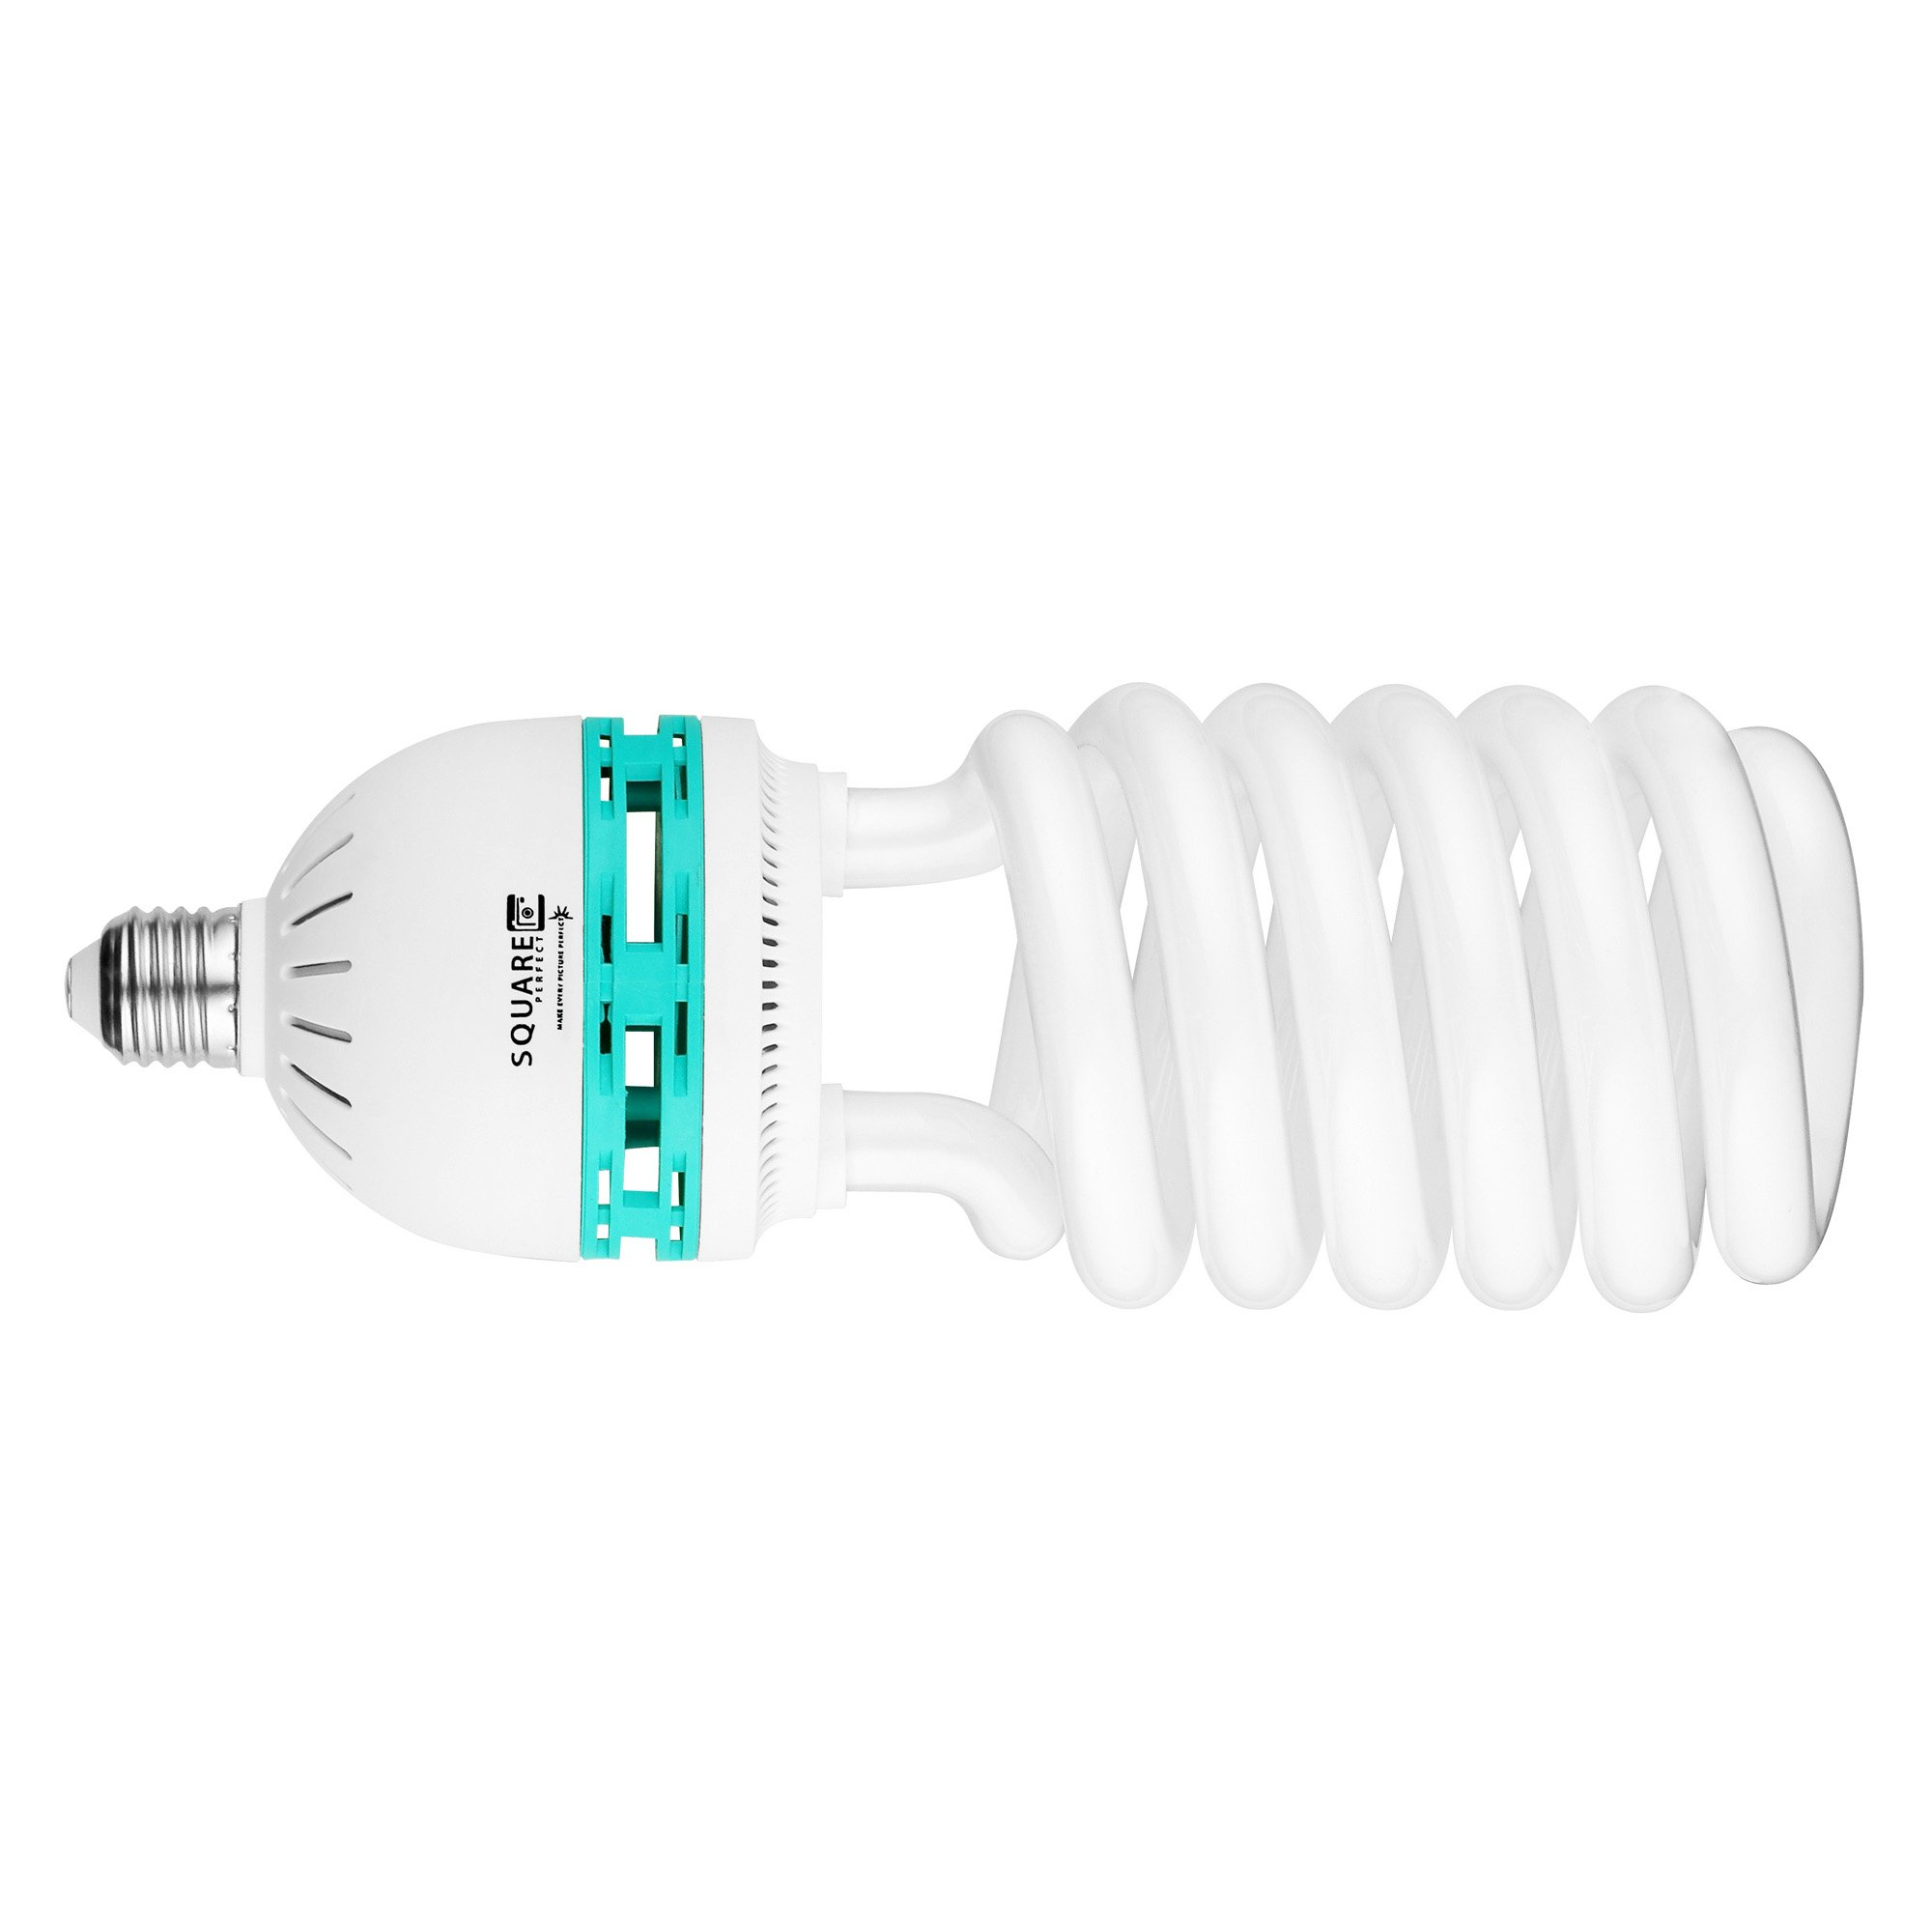 3080 Square Perfect Professional Quality 100 Watt Compact Fluorescent Full Spectrum Photo Bulb Photography by SQUARE PERFECT